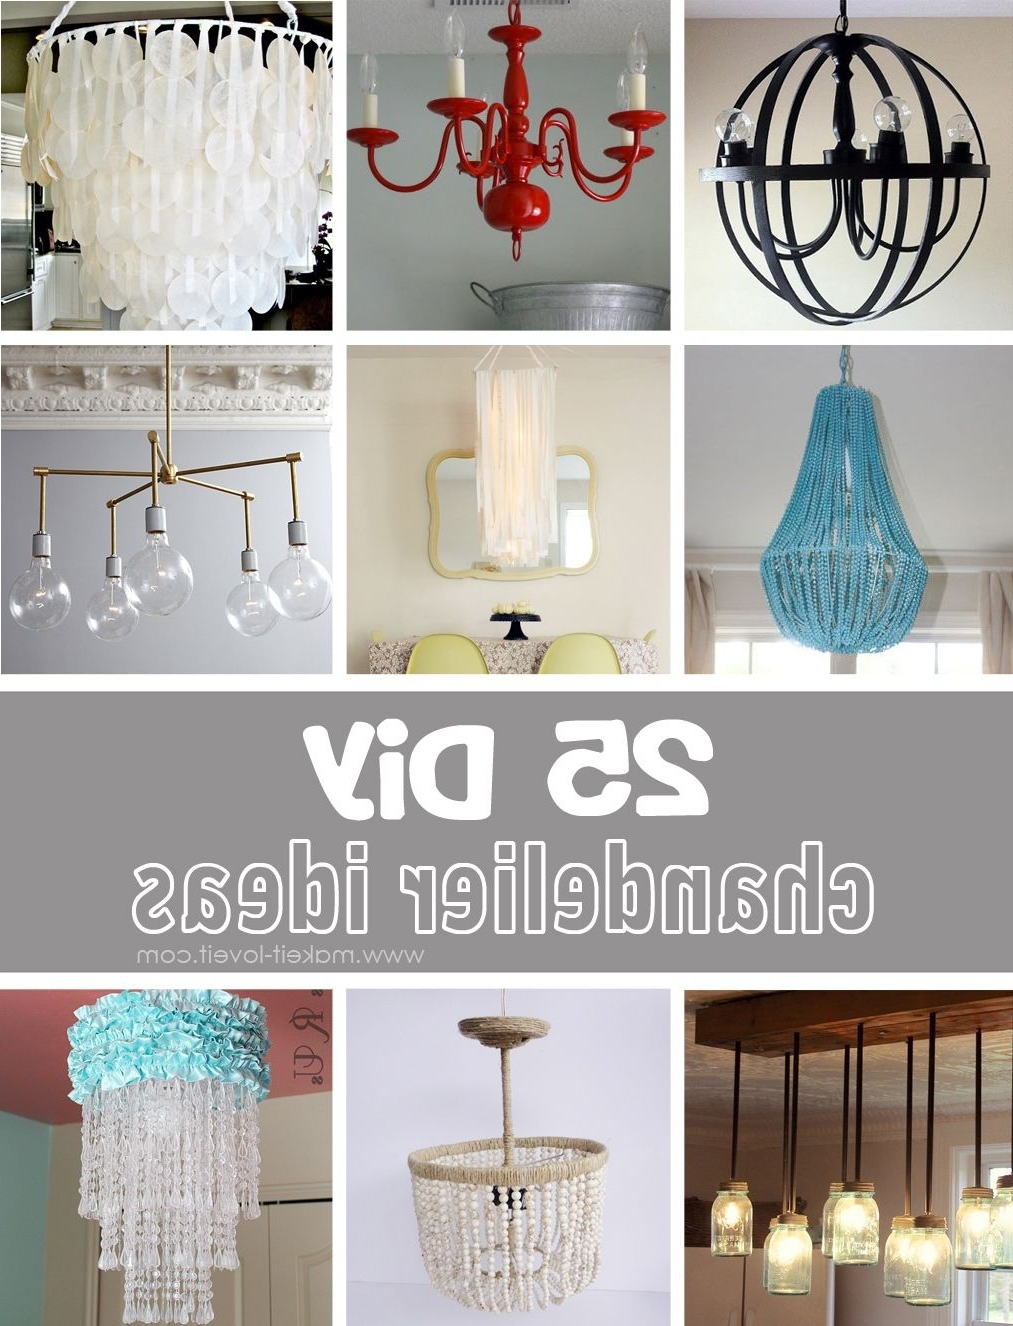 Diy Chandelier With Small Turquoise Beaded Chandeliers (View 15 of 20)